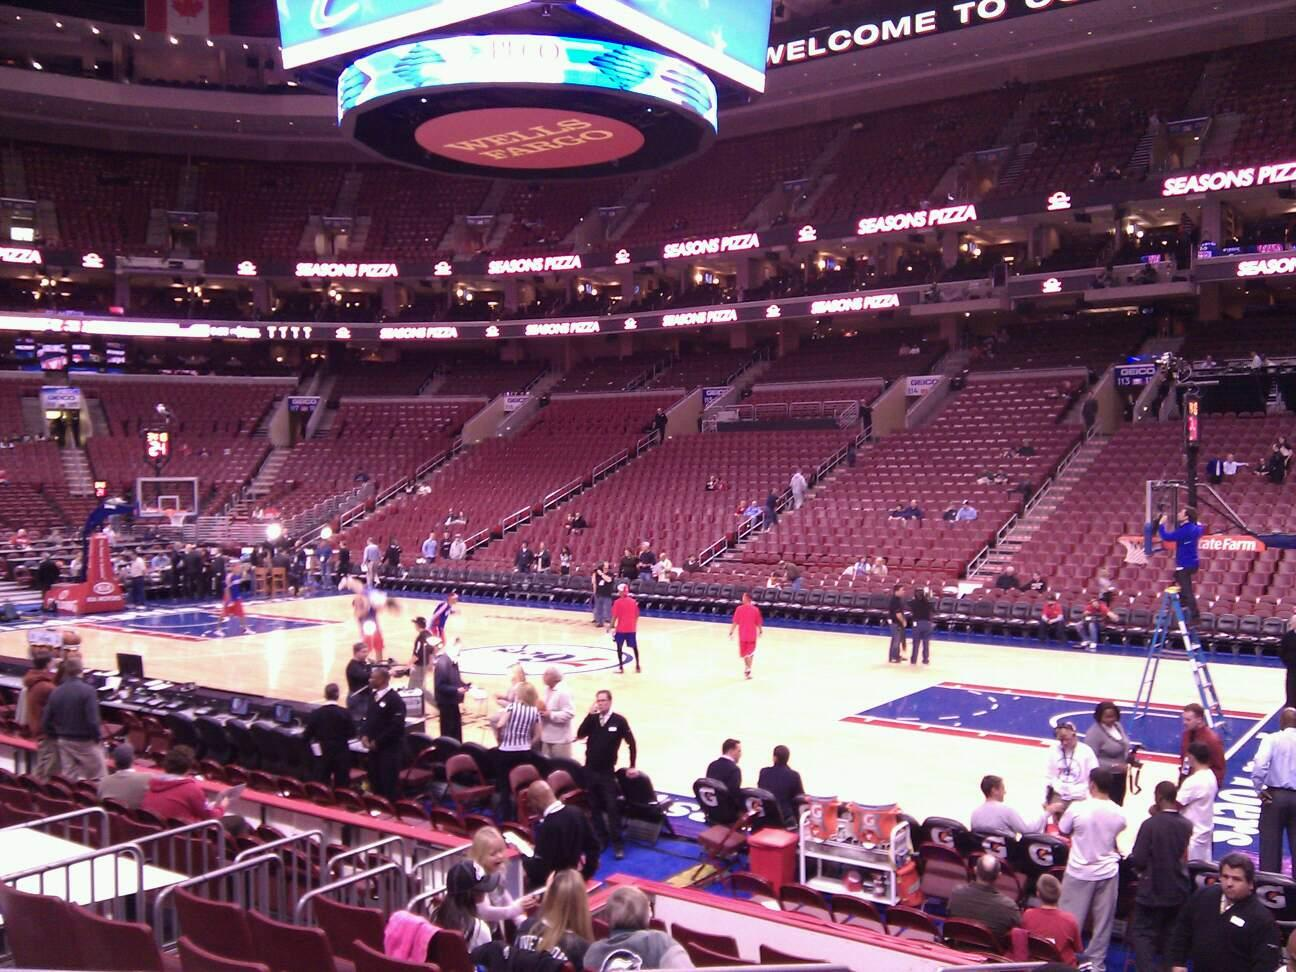 Wells Fargo Center Section 103 Row 10 Seat 4